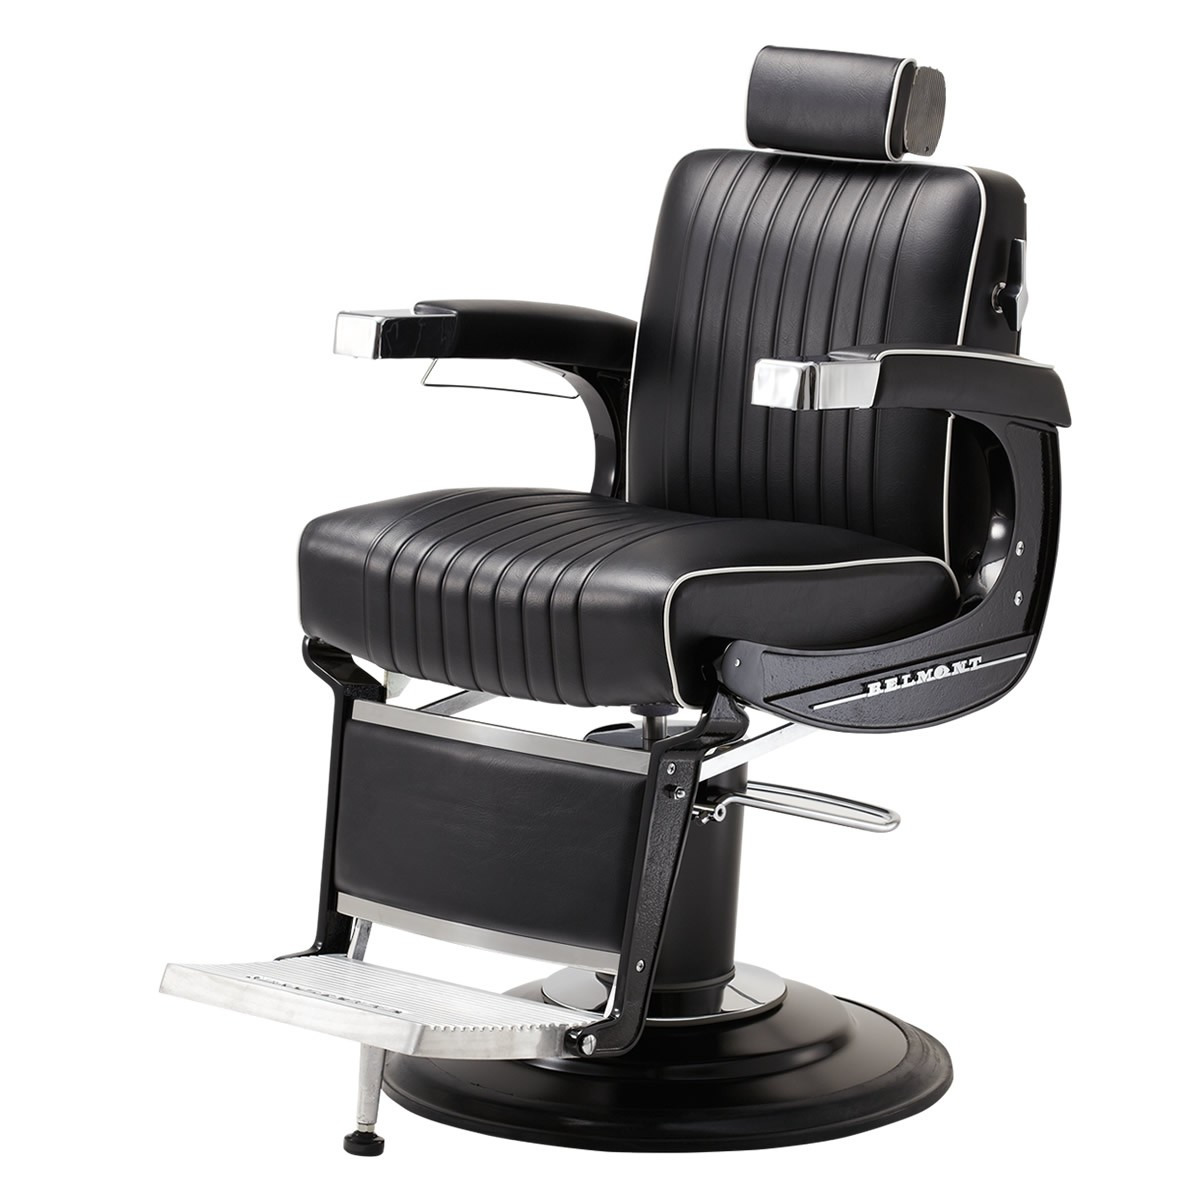 "TAKARA BELMONT B-225 ""ELITE BLACK"" Barber Chair - TAKARA Barber Chairs, BELMONT Barber Chairs"